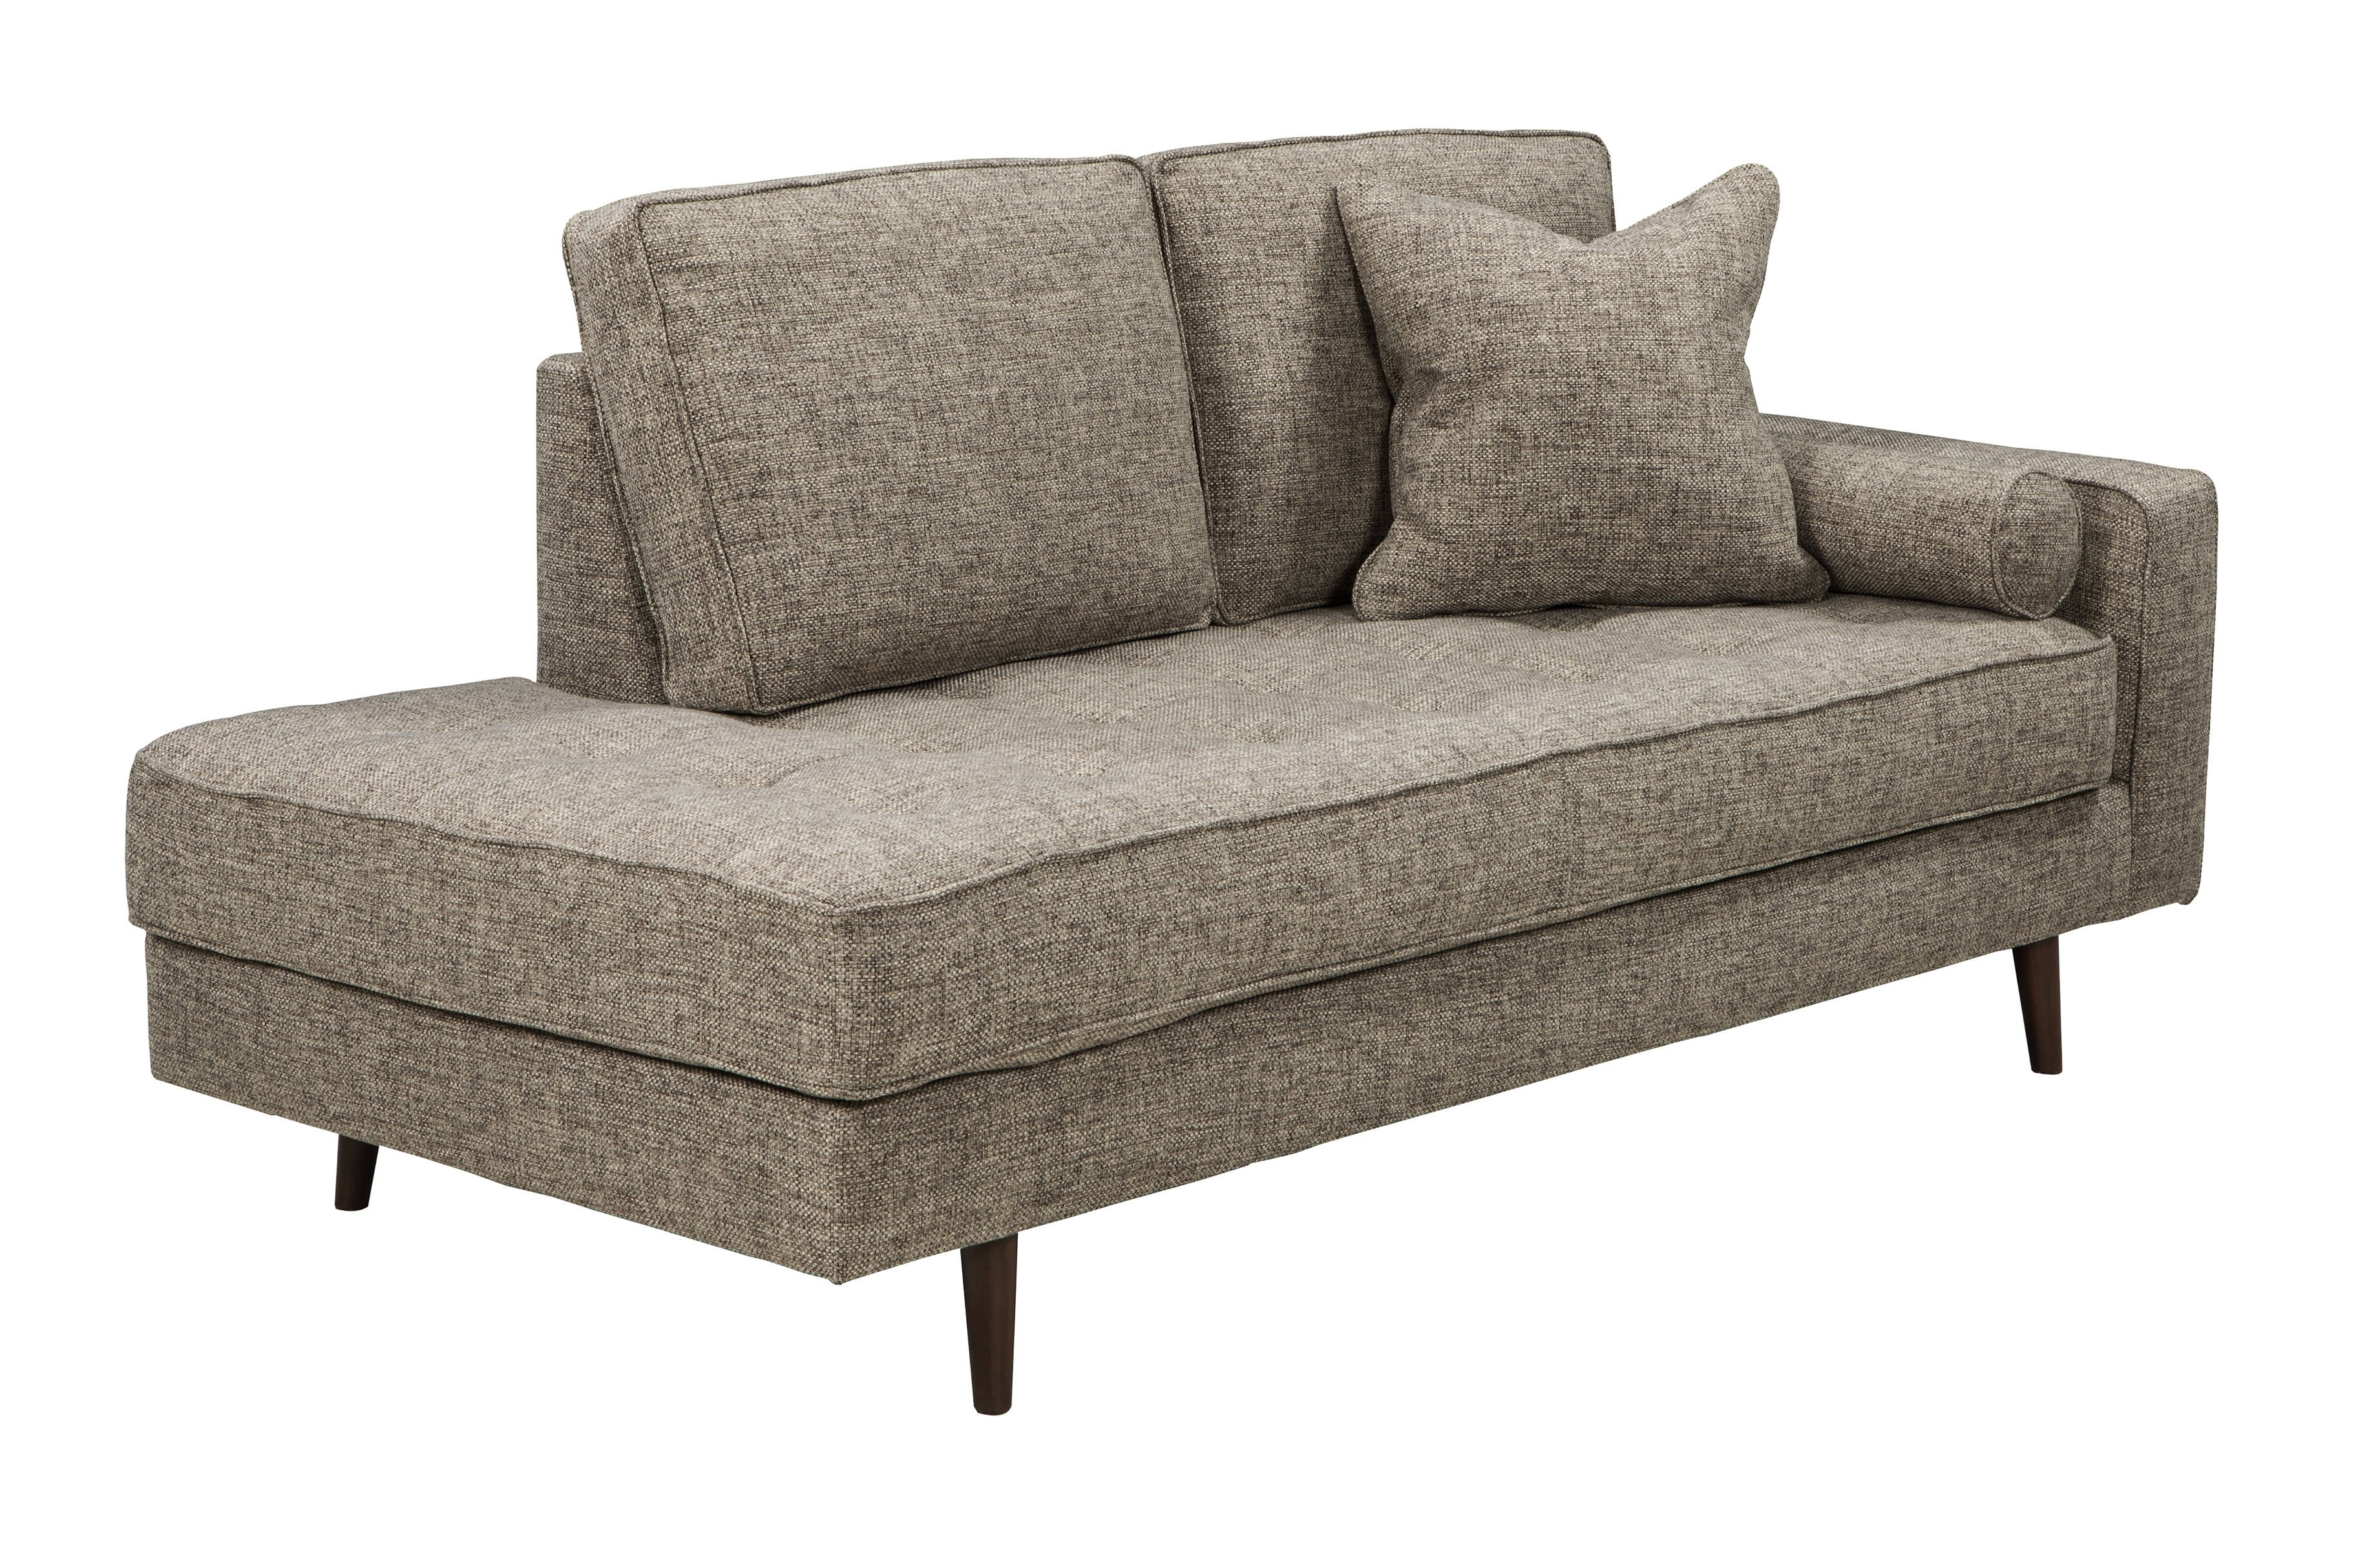 Ashley Furniture Chento Jute Raf Corner Chaise | The Classy Home Regarding Lucy Dark Grey 2 Piece Sectionals With Raf Chaise (Image 5 of 25)